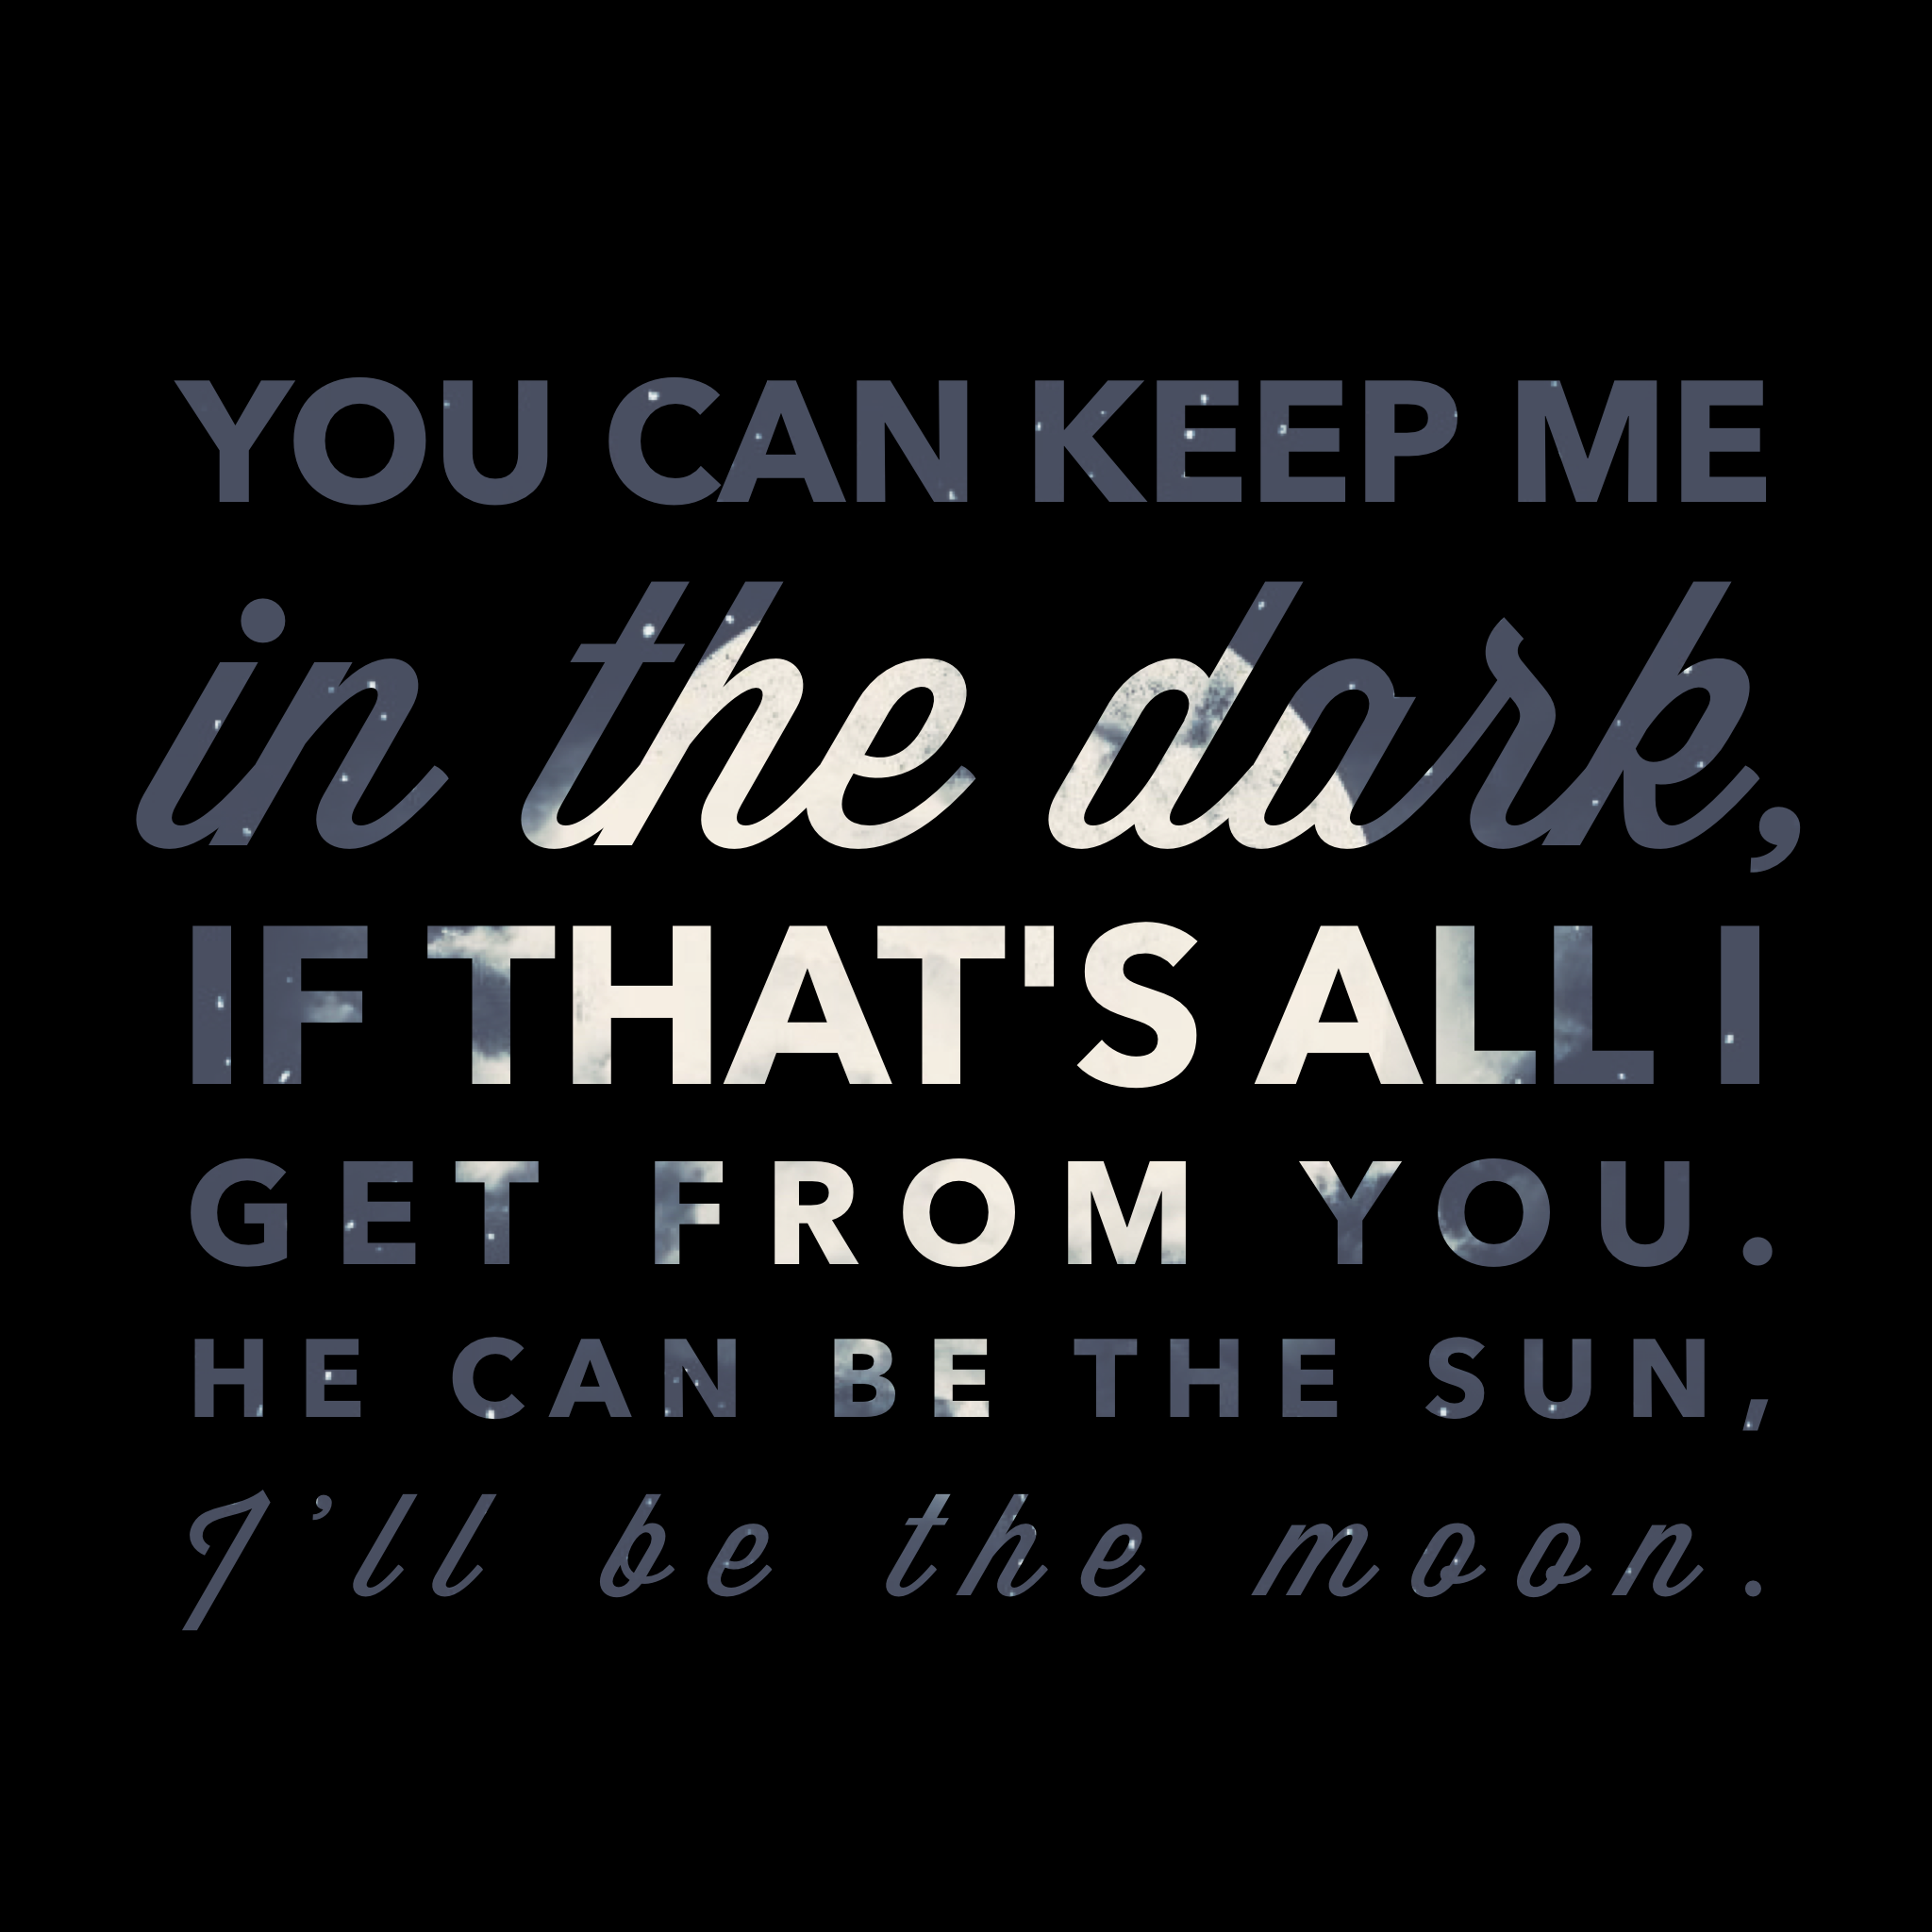 if that's all i get from you (dierks bentley feat maren morris/ i'll